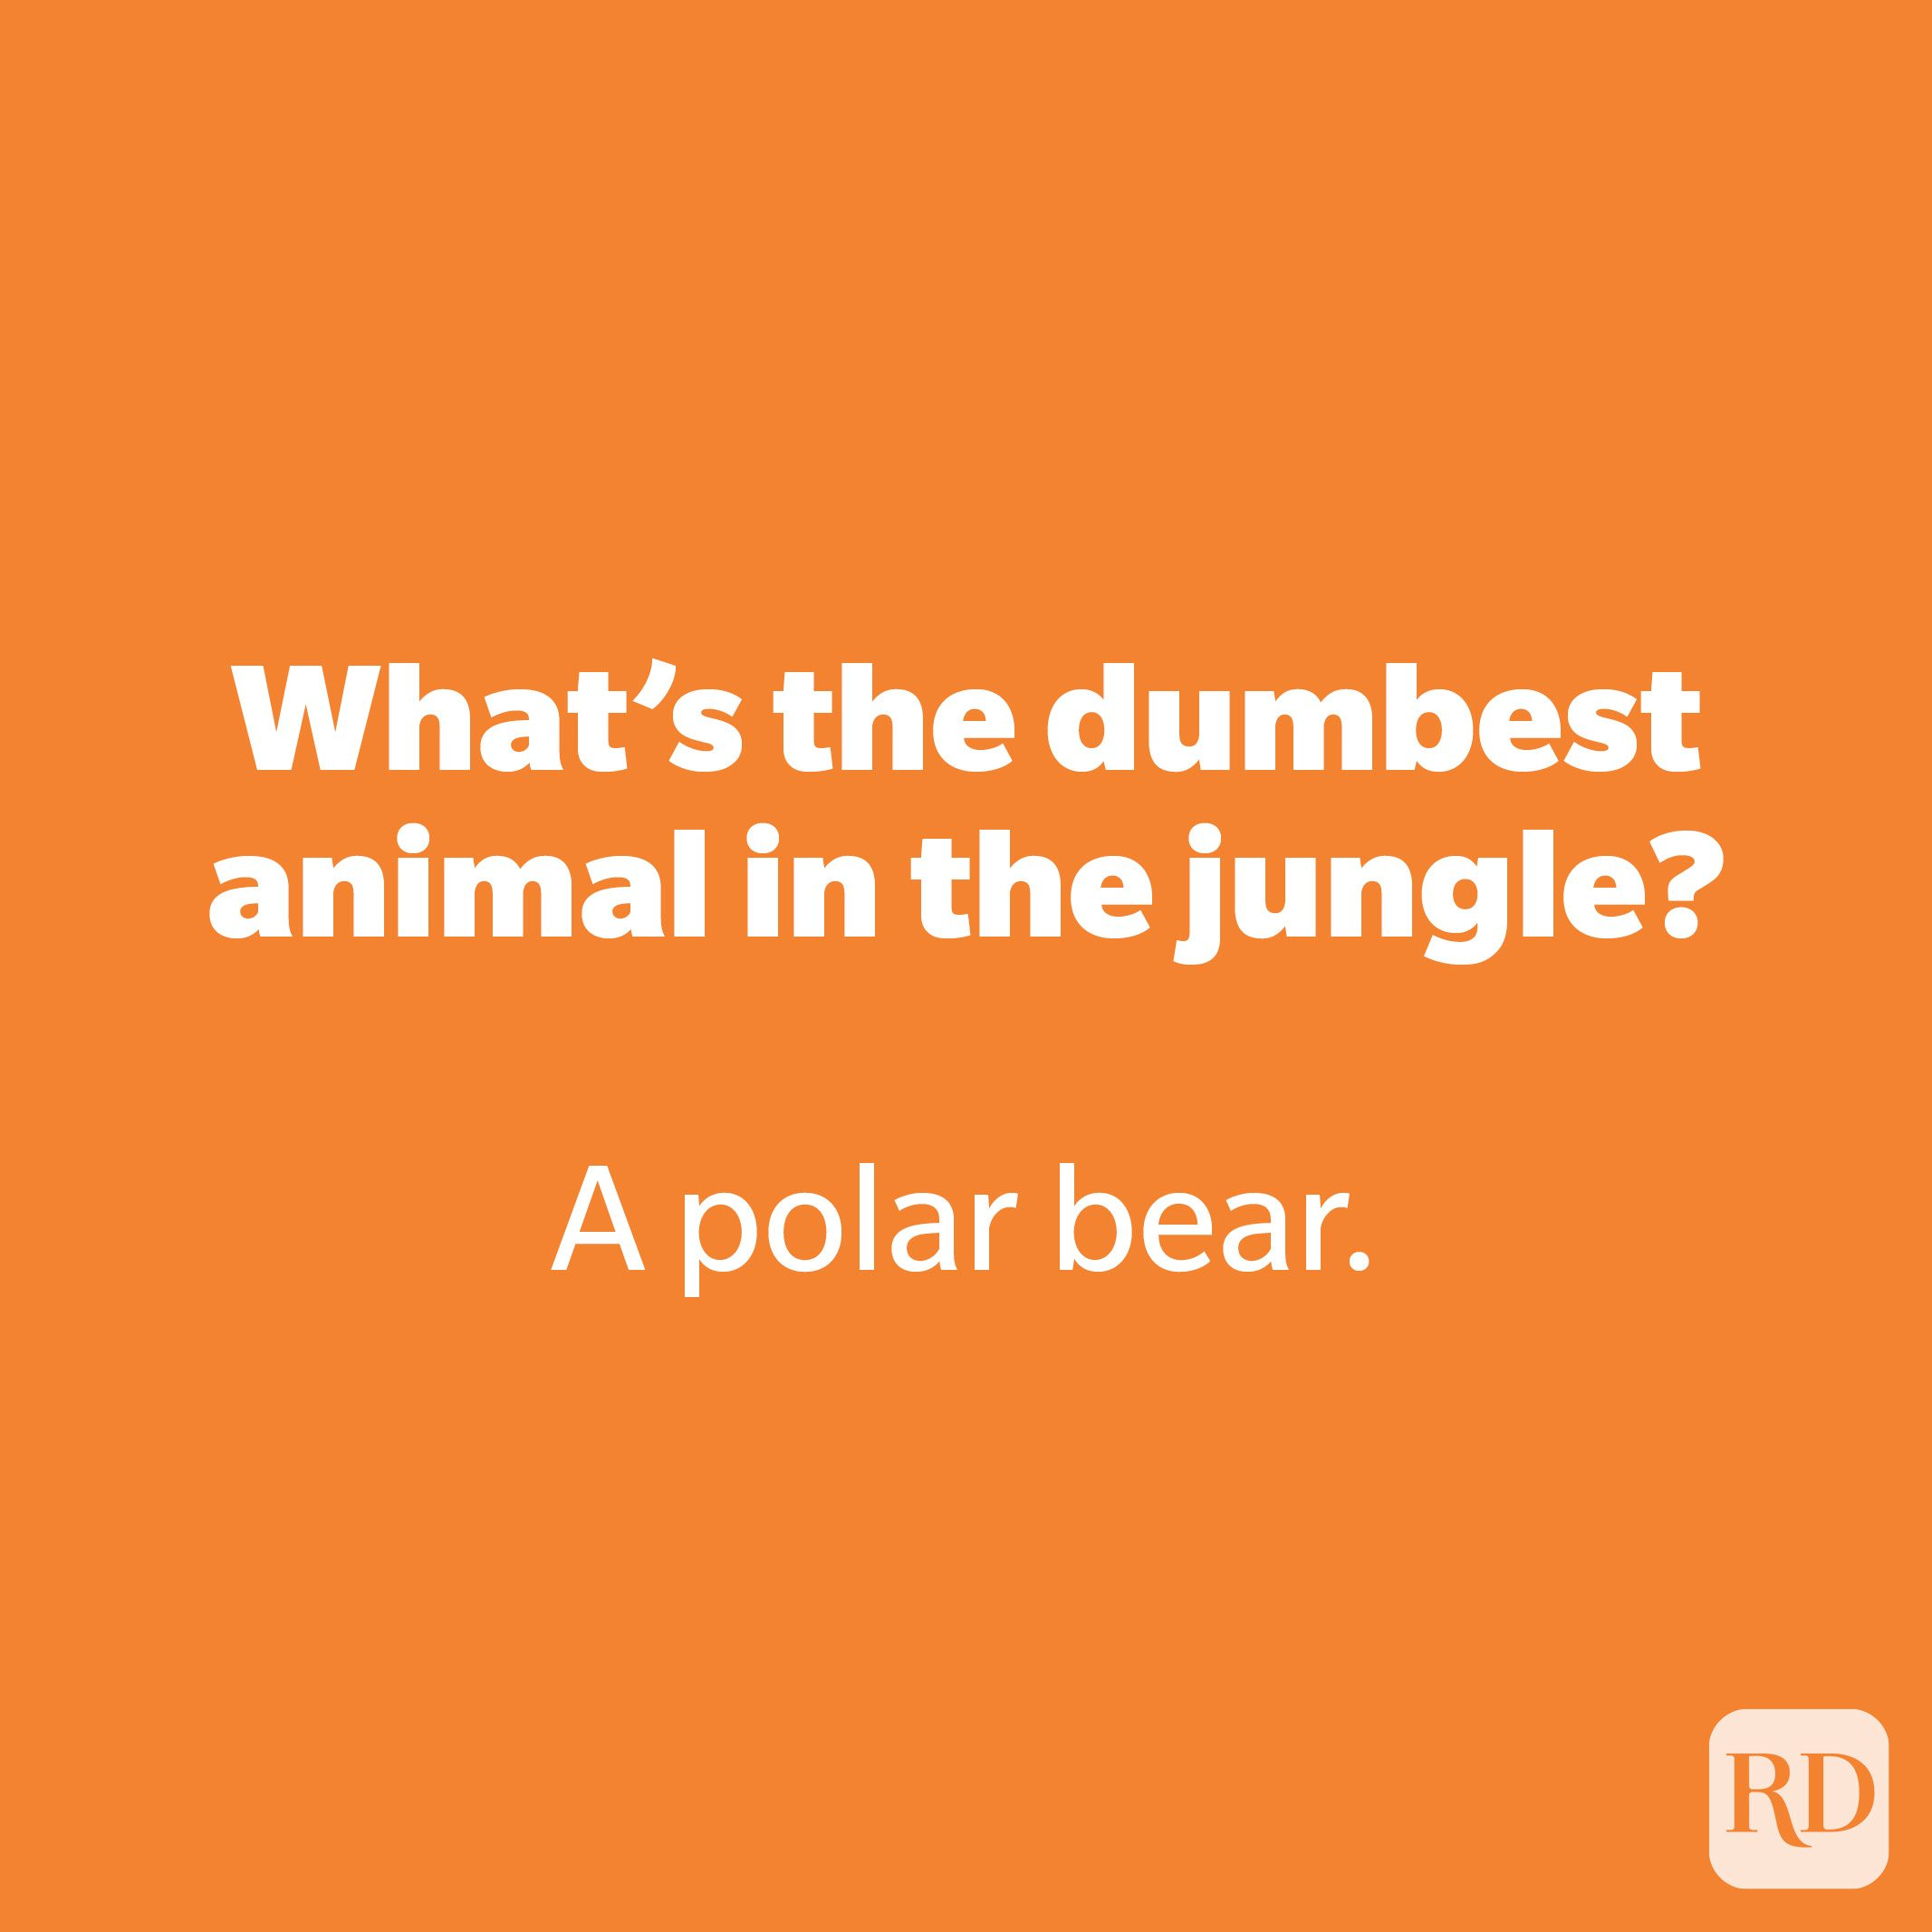 What's the dumbest animal in the jungle?